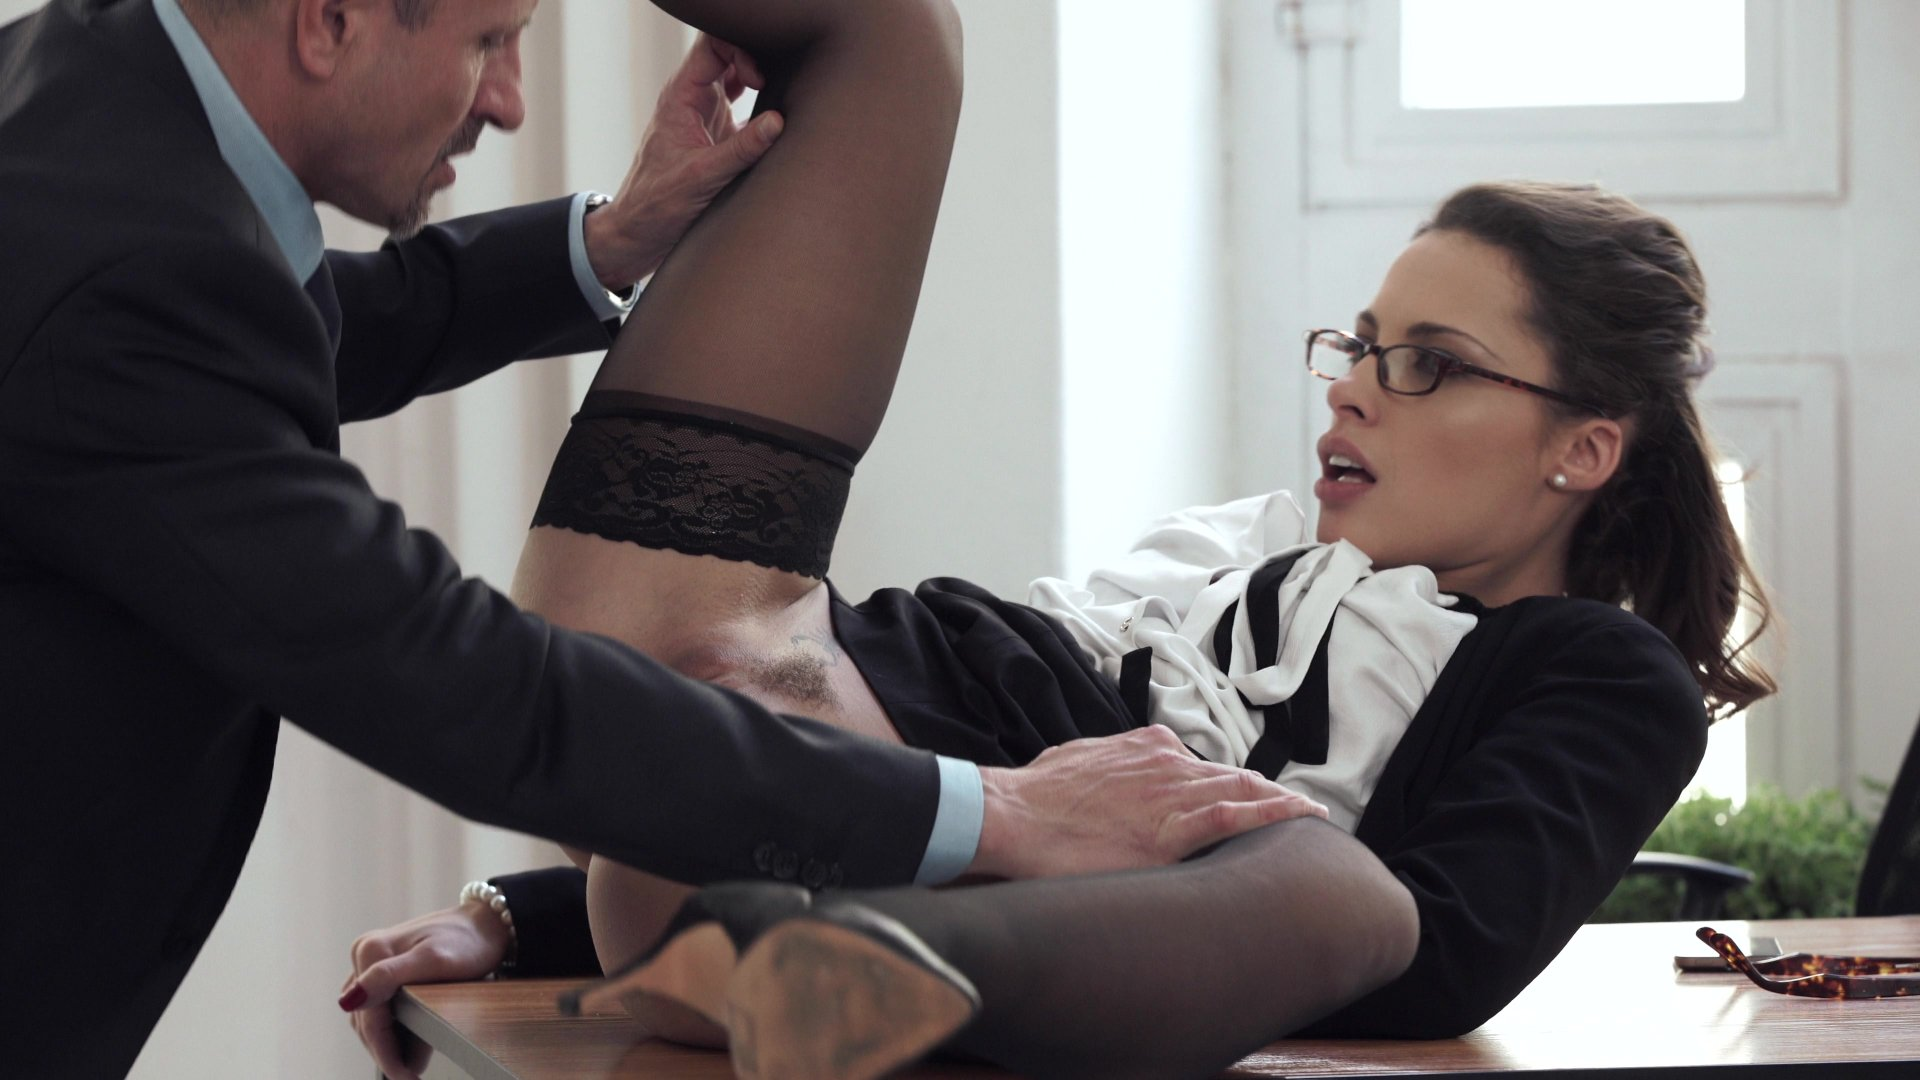 Sexy Secretary Cum Swallow For The Boss